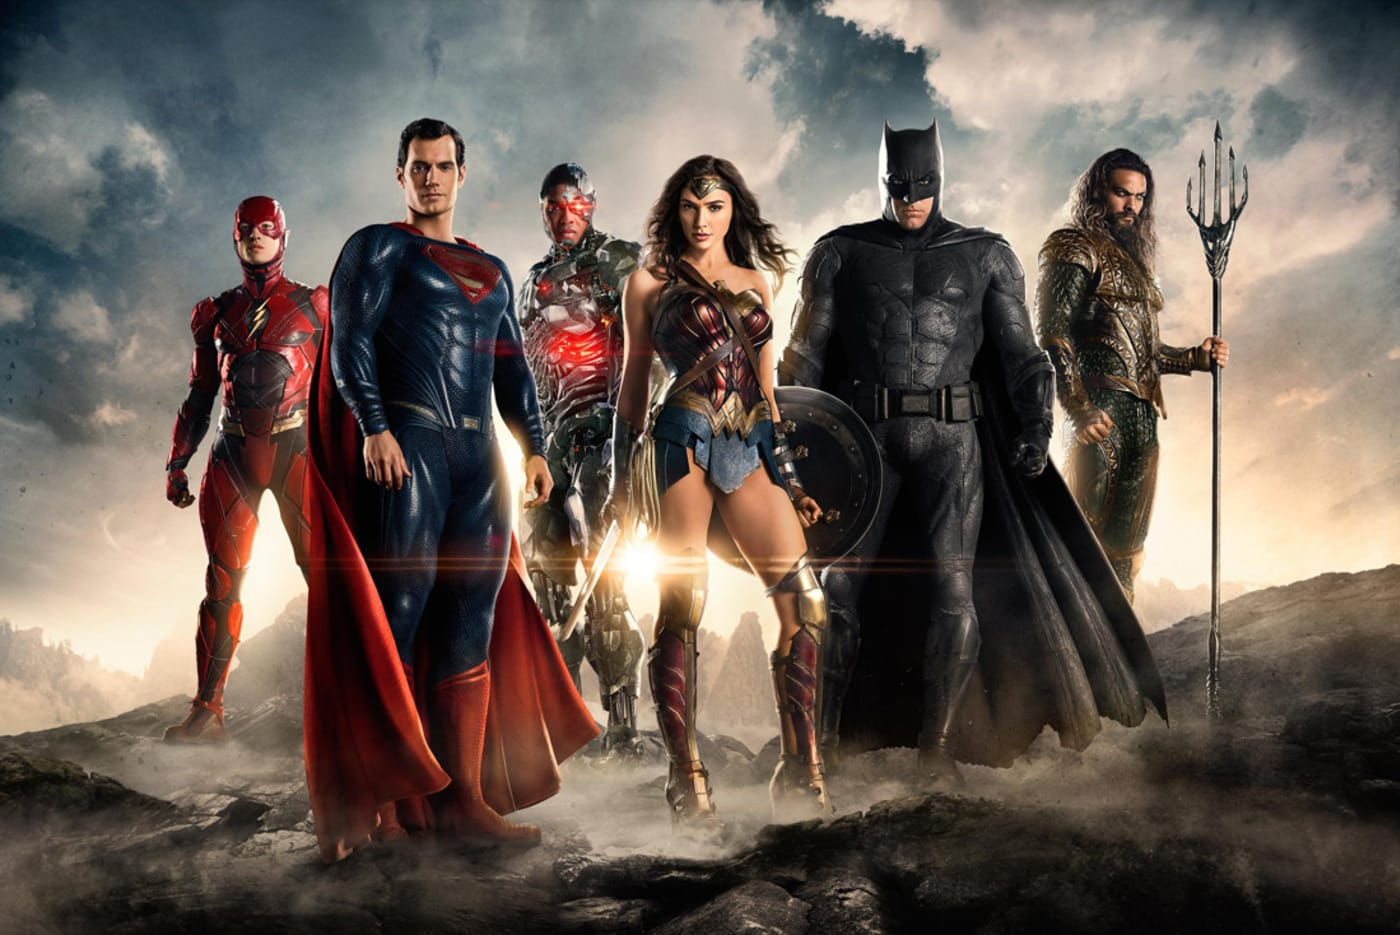 The Synder Cut Zack Snyder's Justice League